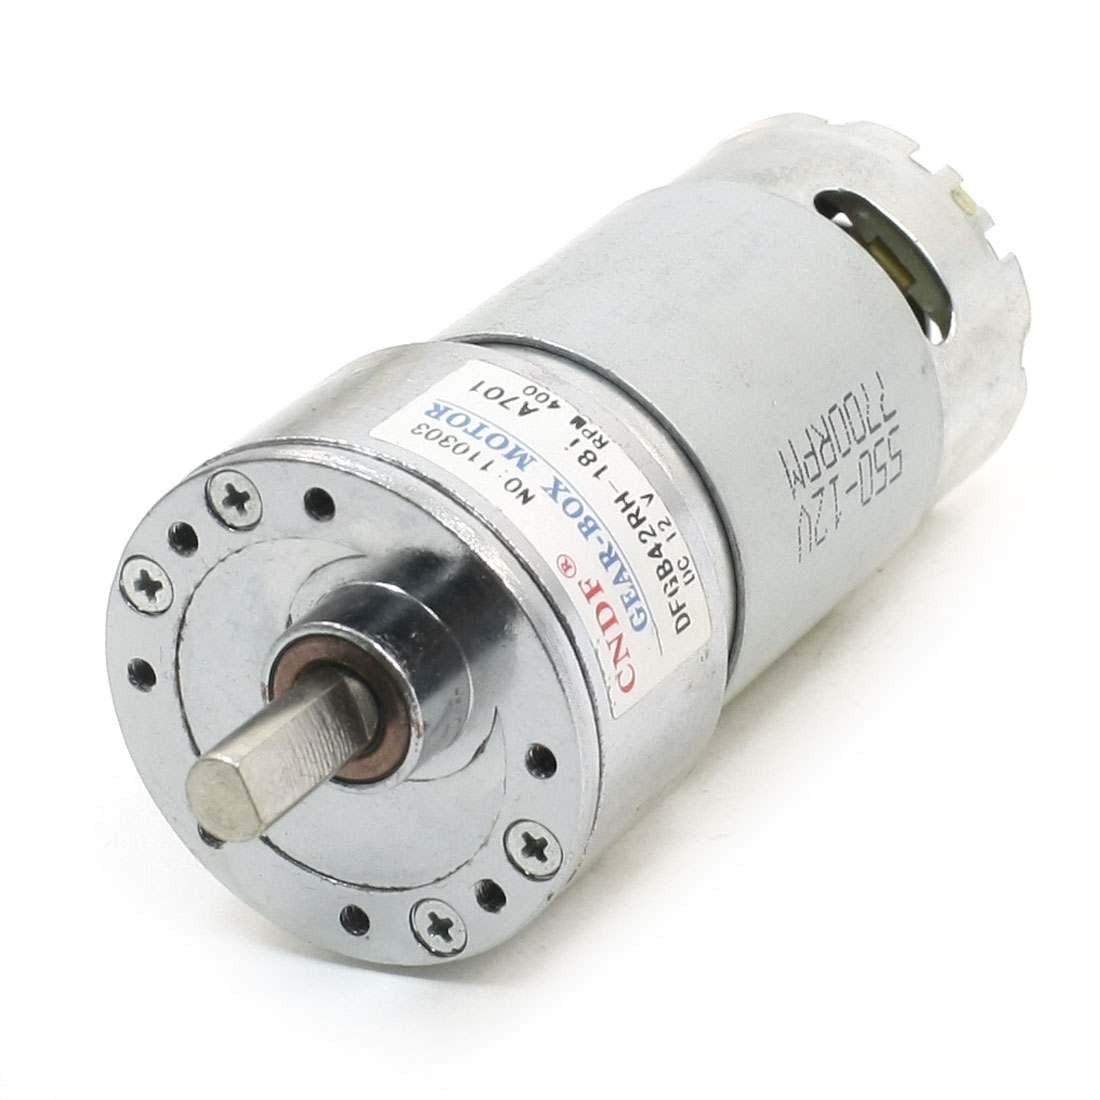 DC12V 400RPM No-load Rotation Speed 110mm Length Magnetic Gearbox Motor